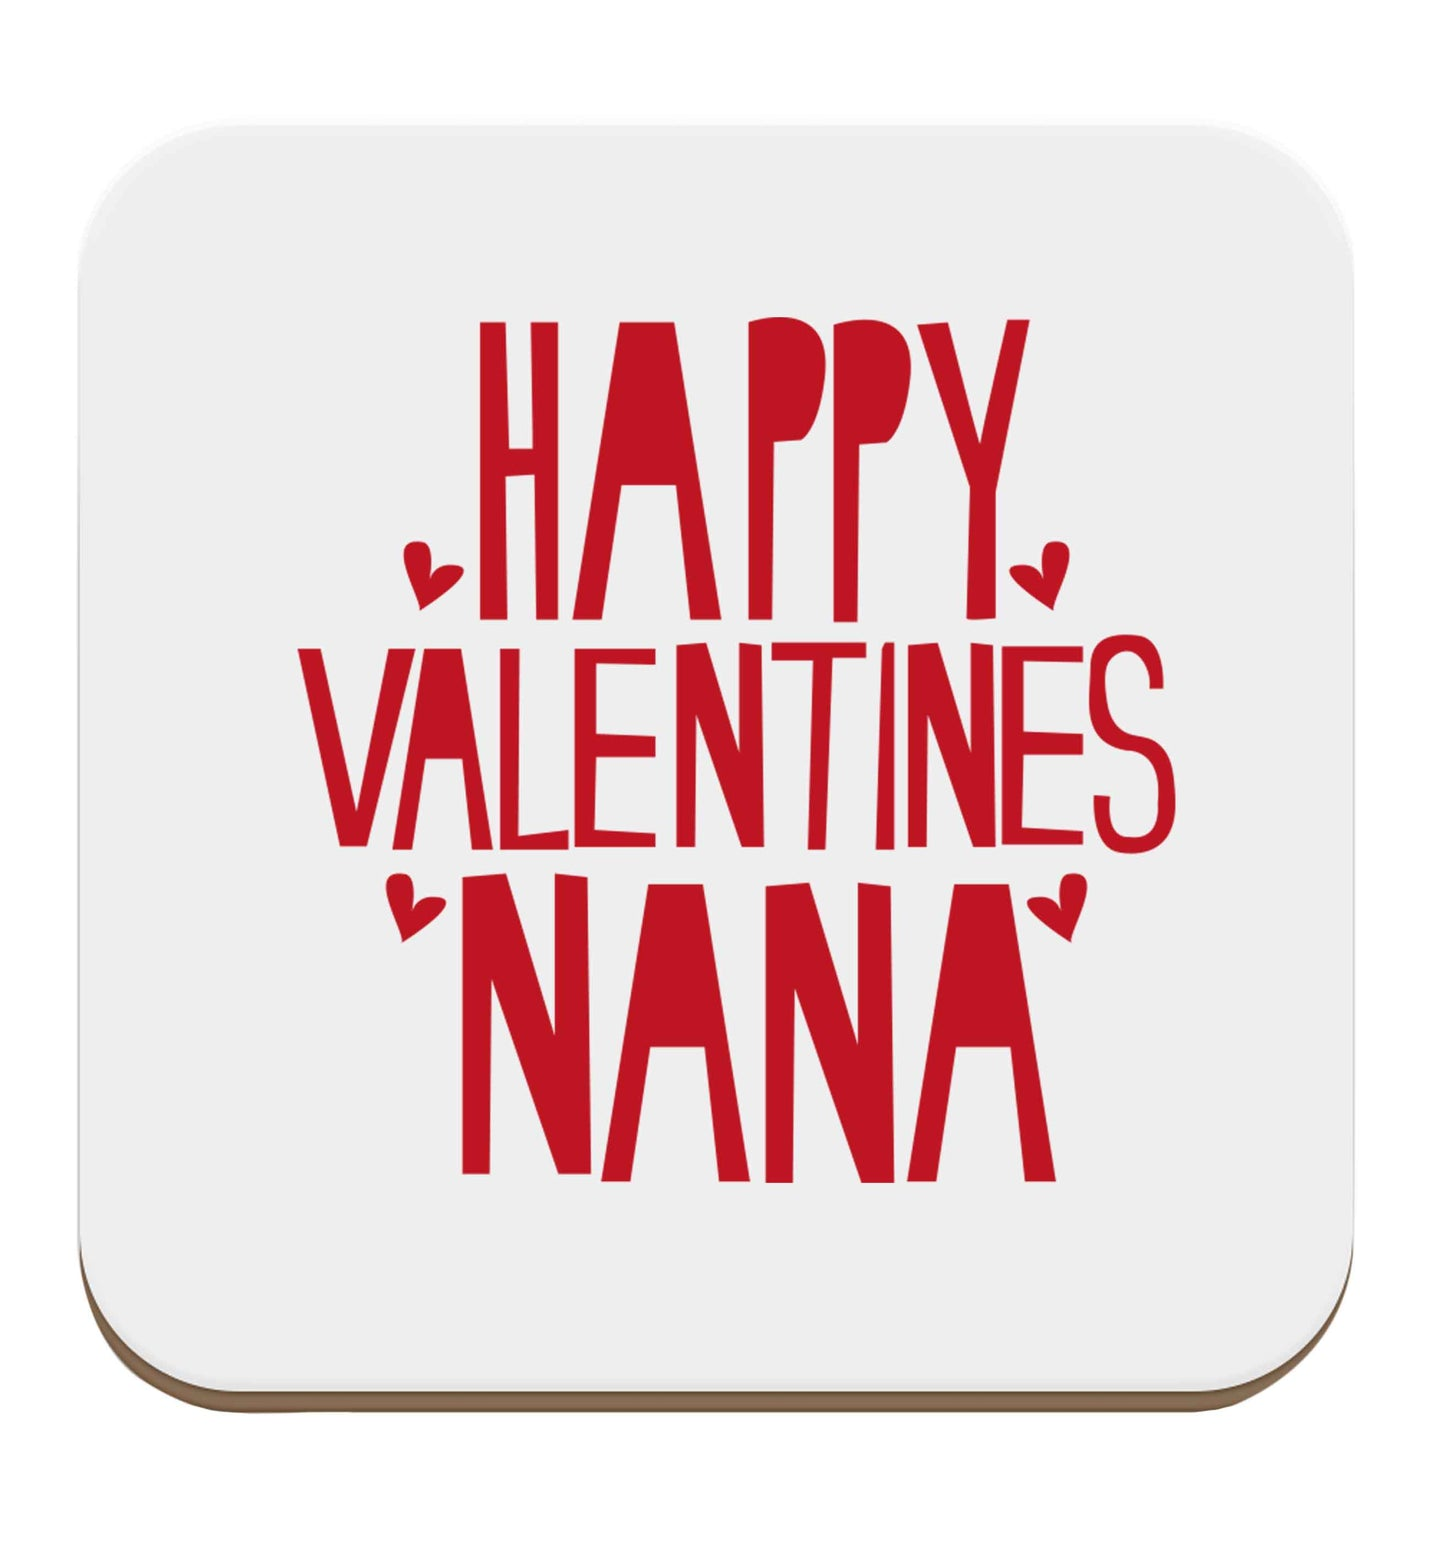 Happy valentines nana set of four coasters